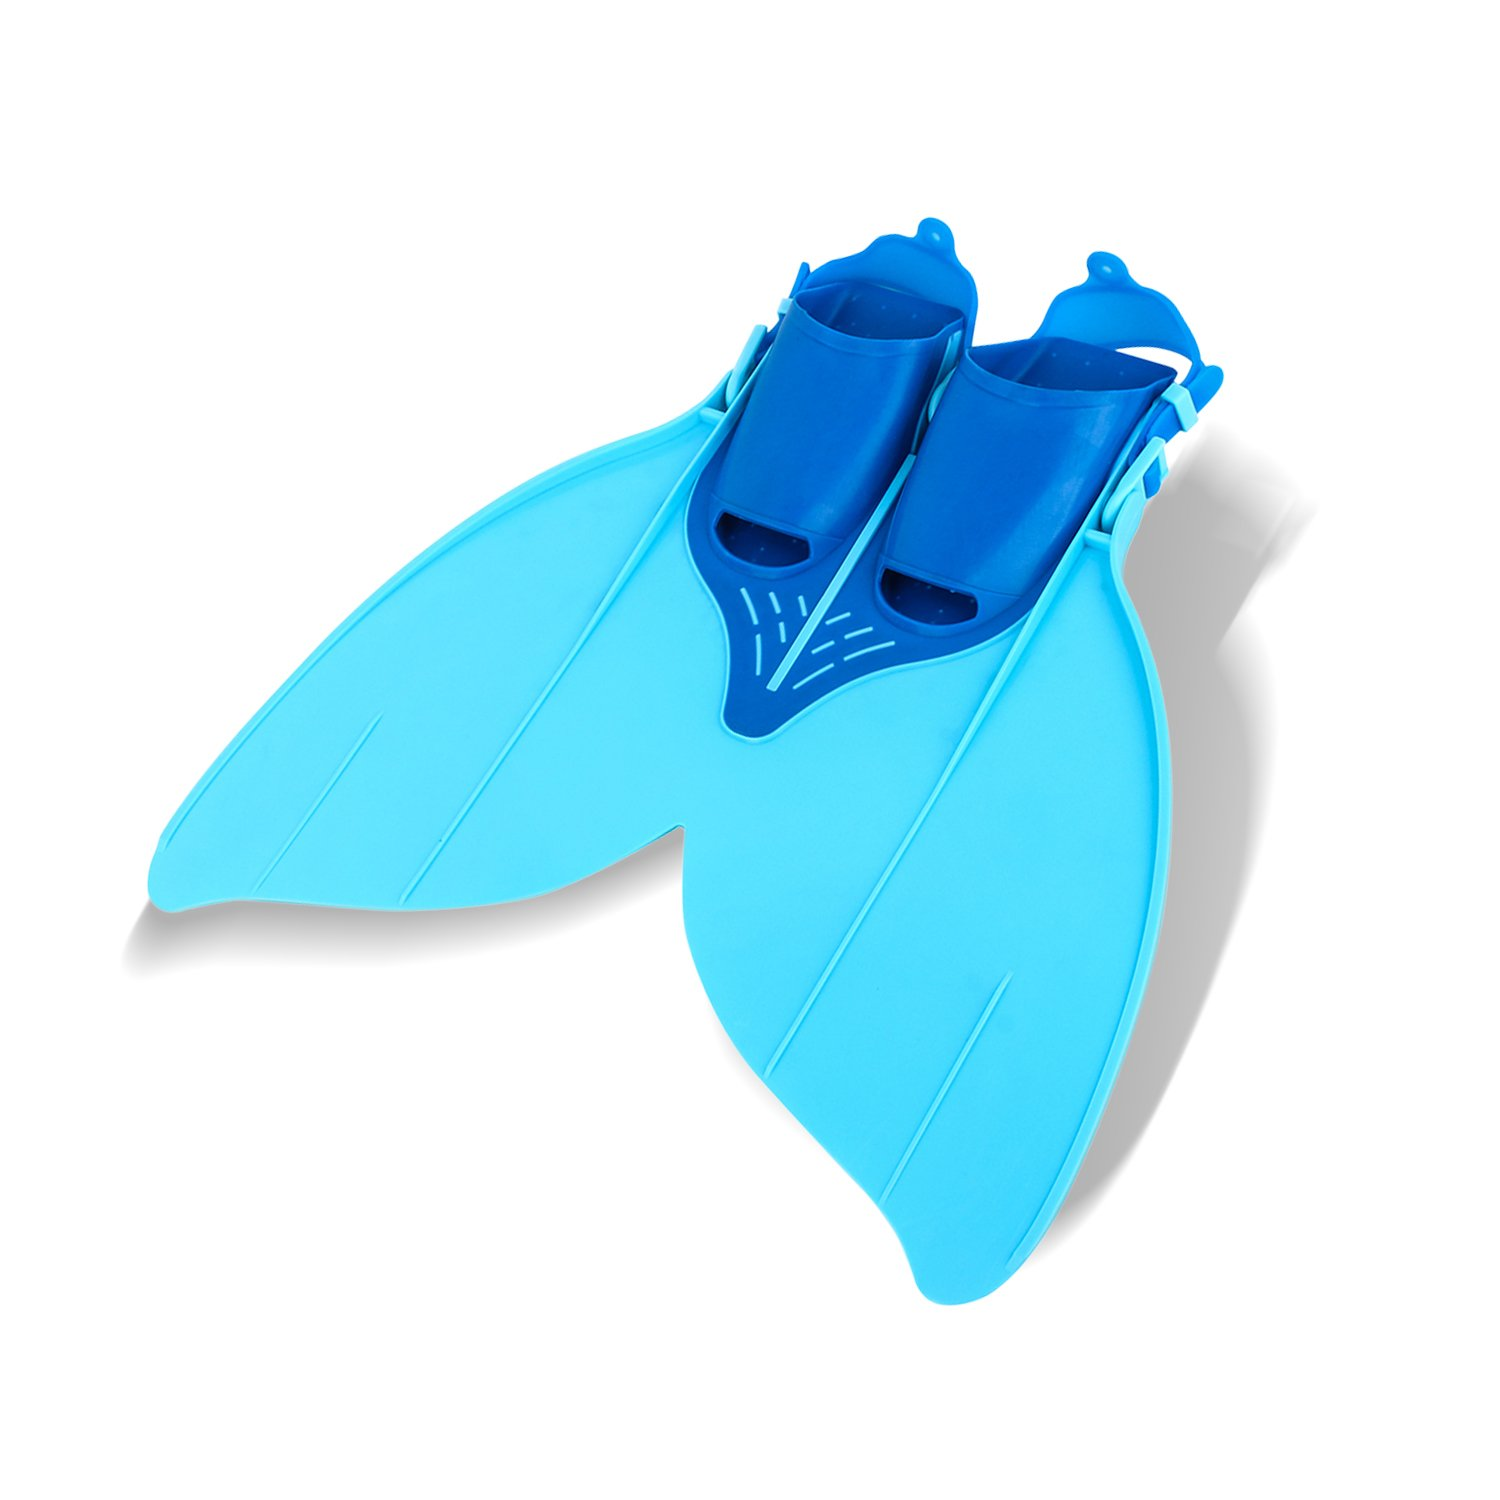 Yosoo Fishtail Monofin Mono Fin Flippers Swimming Toy Swimmable for Youth yosoo-223-pp